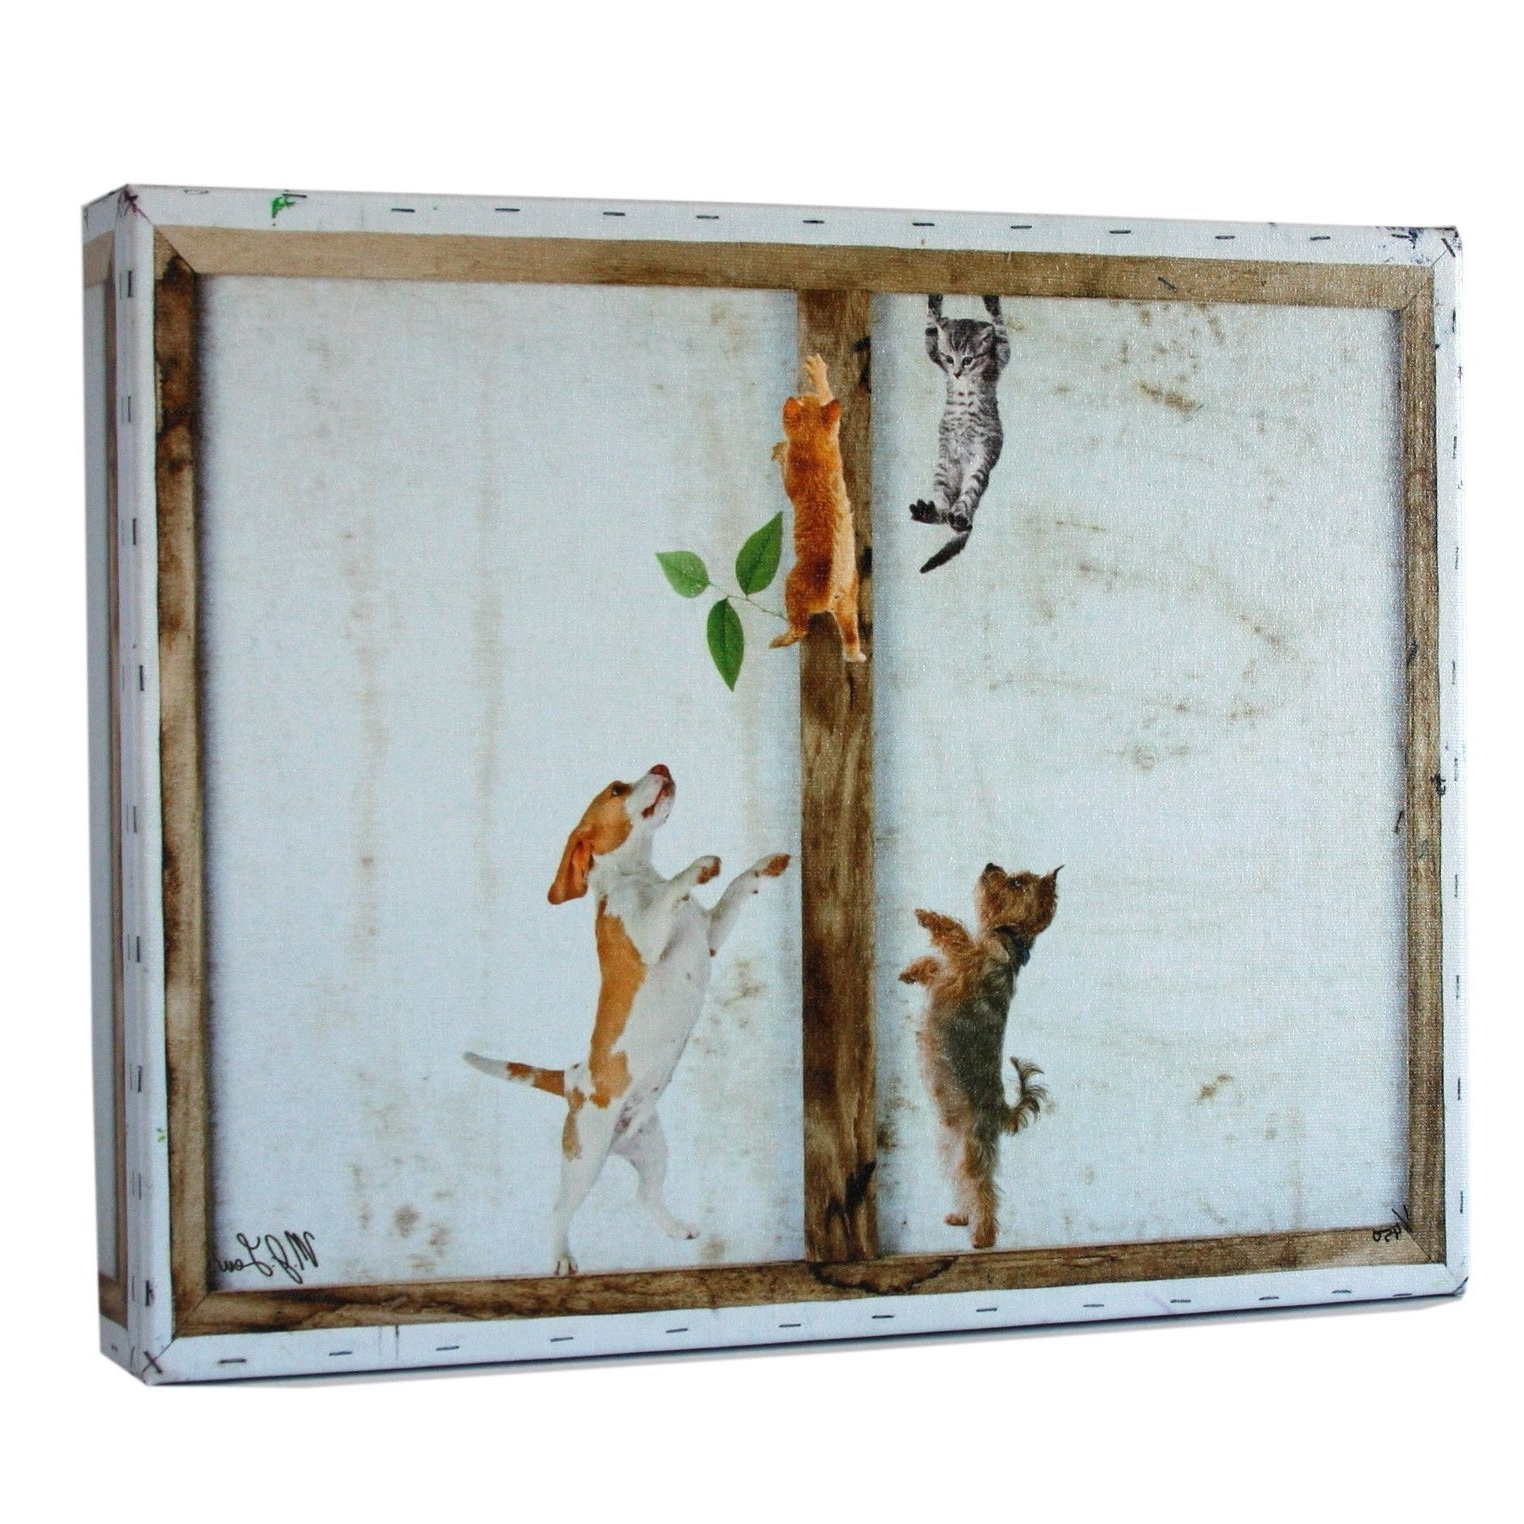 Funky Art, Printing And Art Pieces With Regard To Popular Funky Art Framed Prints (View 8 of 15)